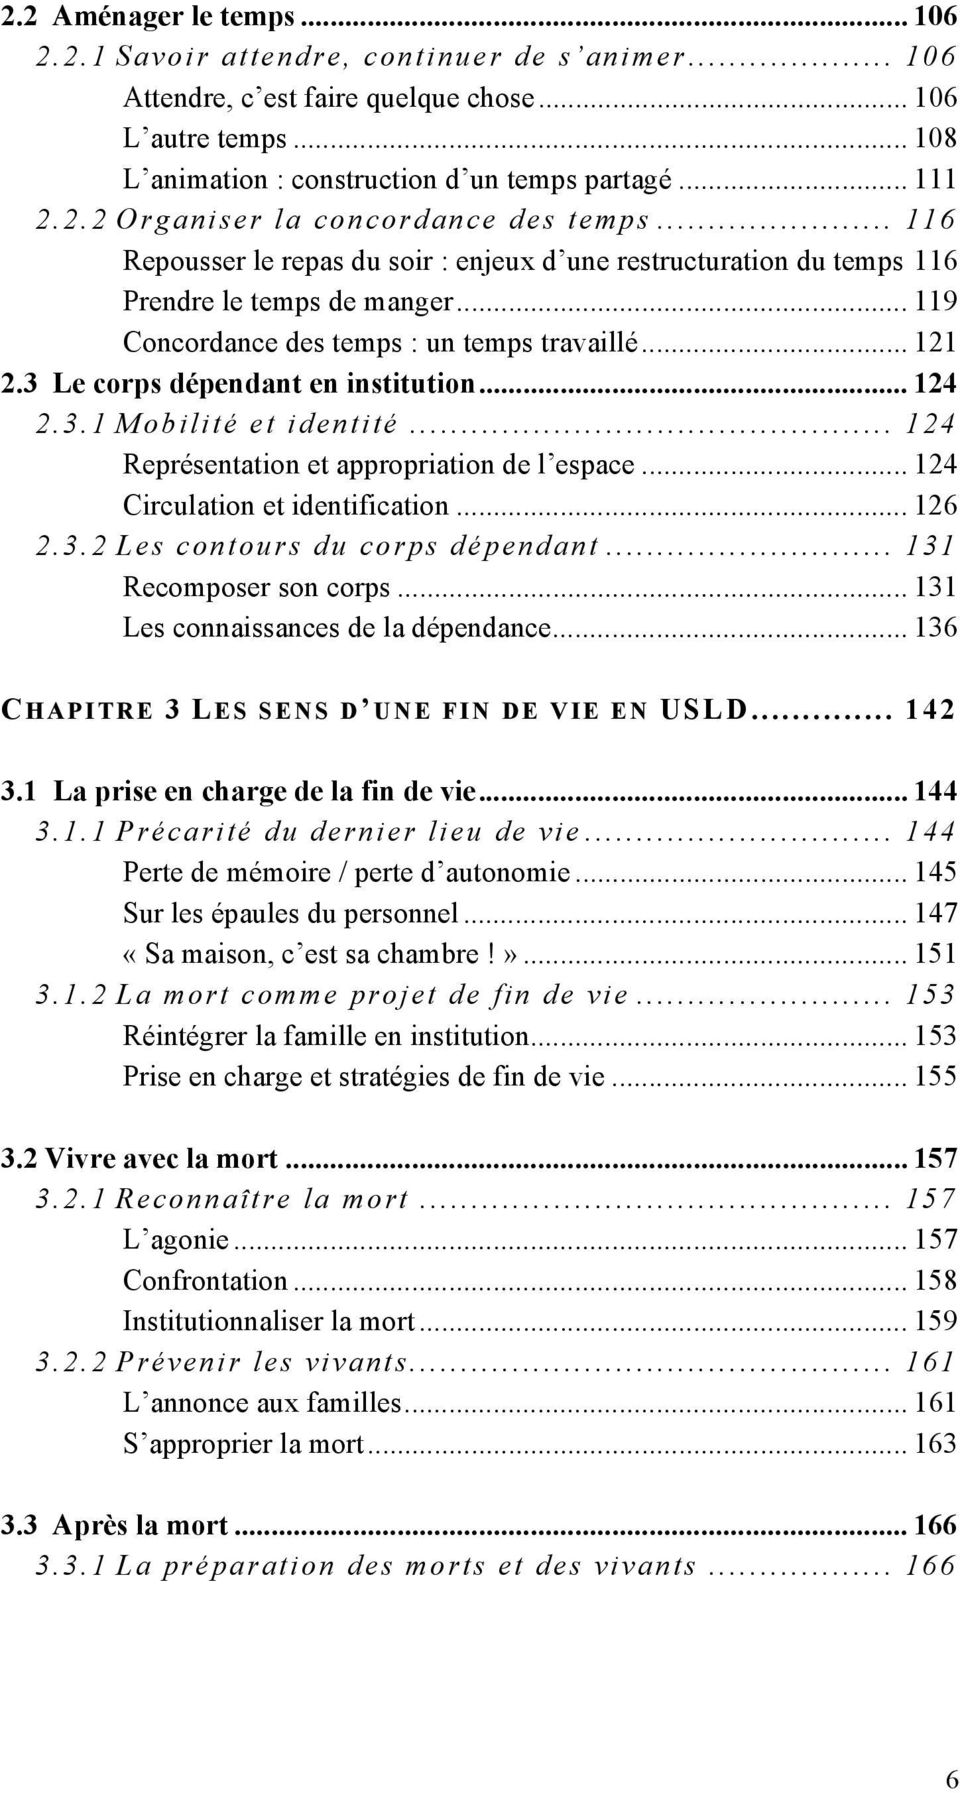 Ethnologie compar e de la vie quotidienne en institution for Chambre 121 pdf